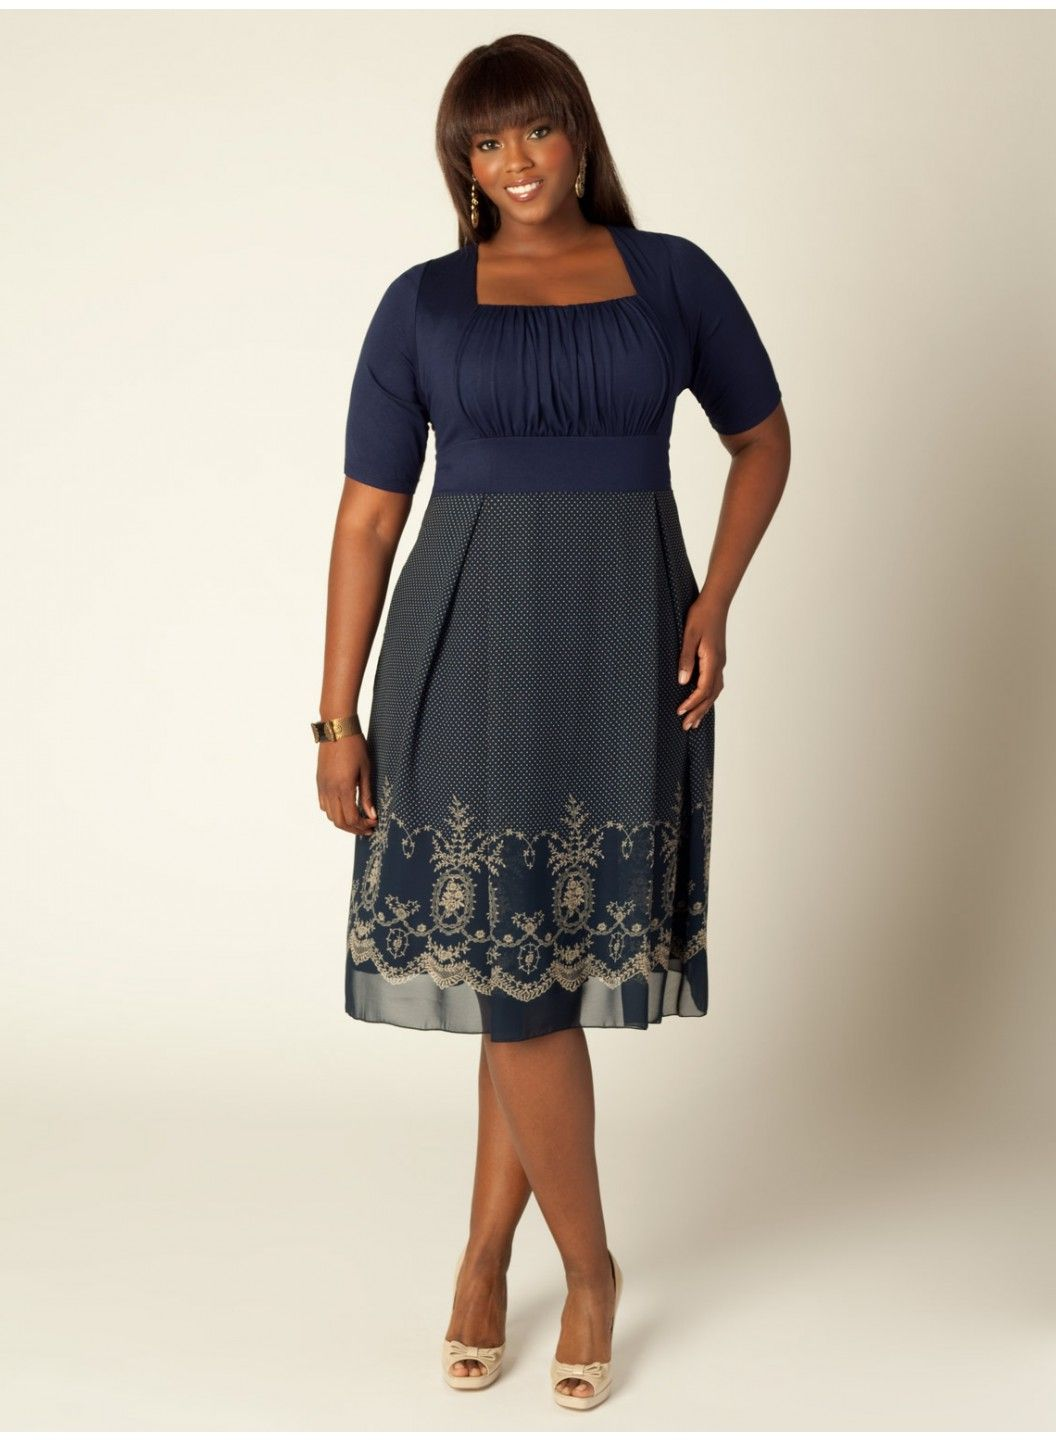 plus size dresses to wear to a wedding photo - 1